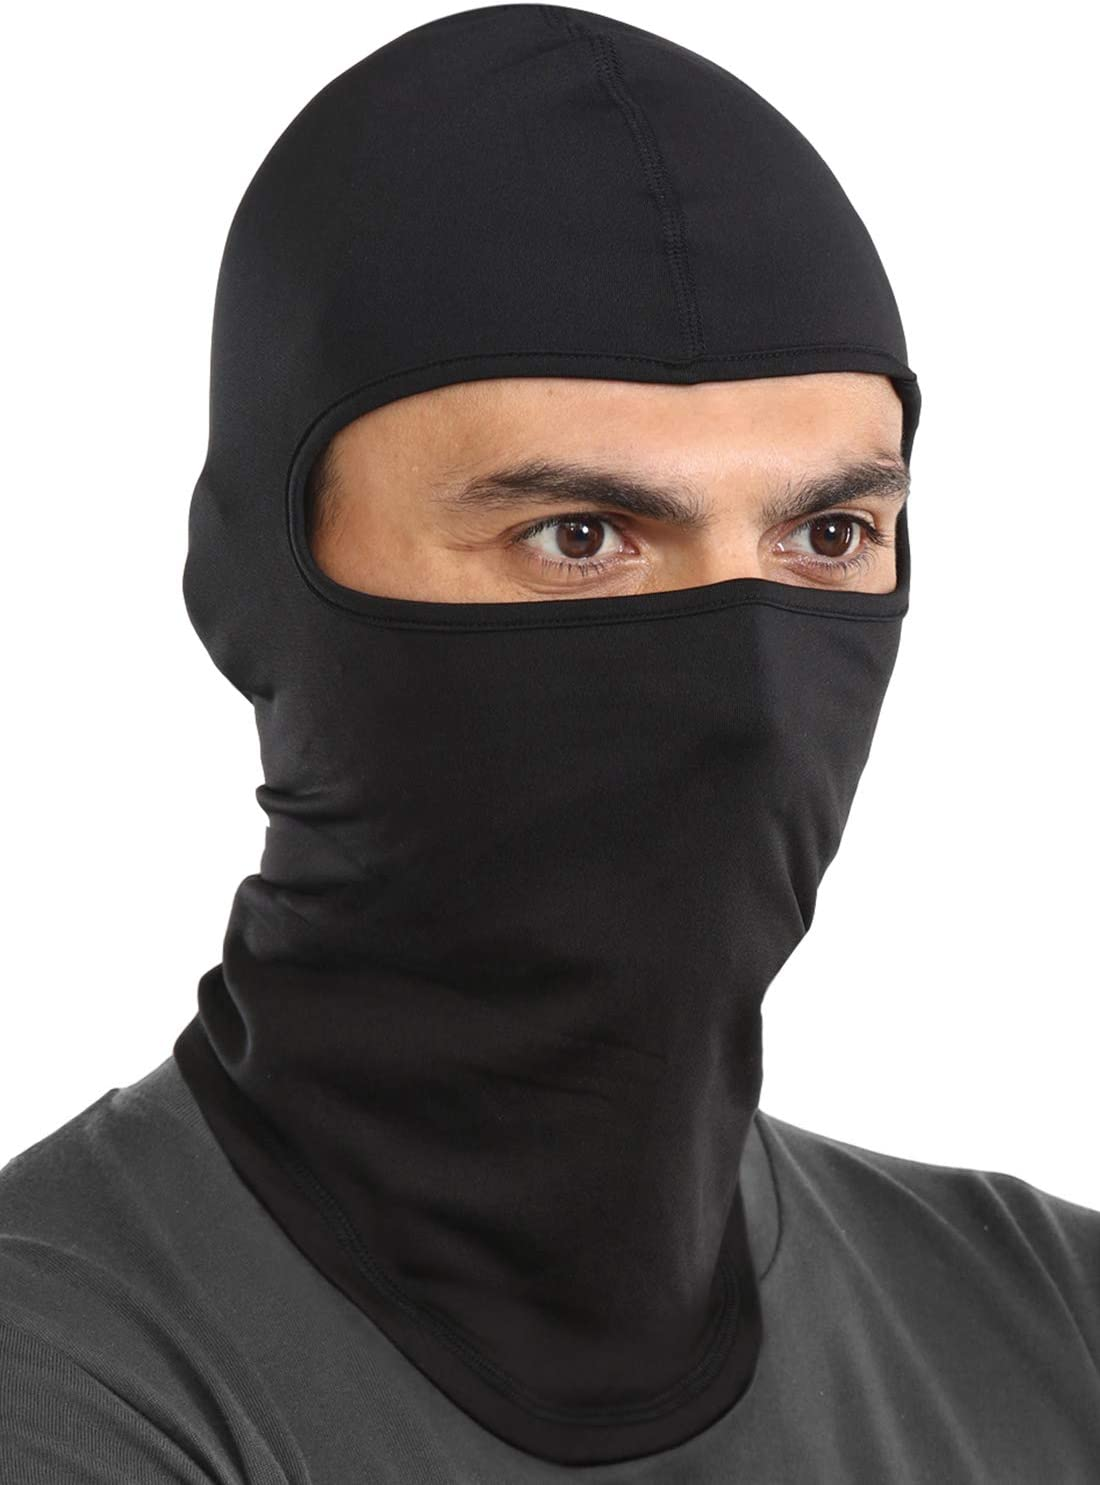 Balaclava Ski Mask - Cold Weather Face Mask for Men & Women - Windproof Hood Snow Gear for Motorcycle Riding & Winter Sports: Automotive